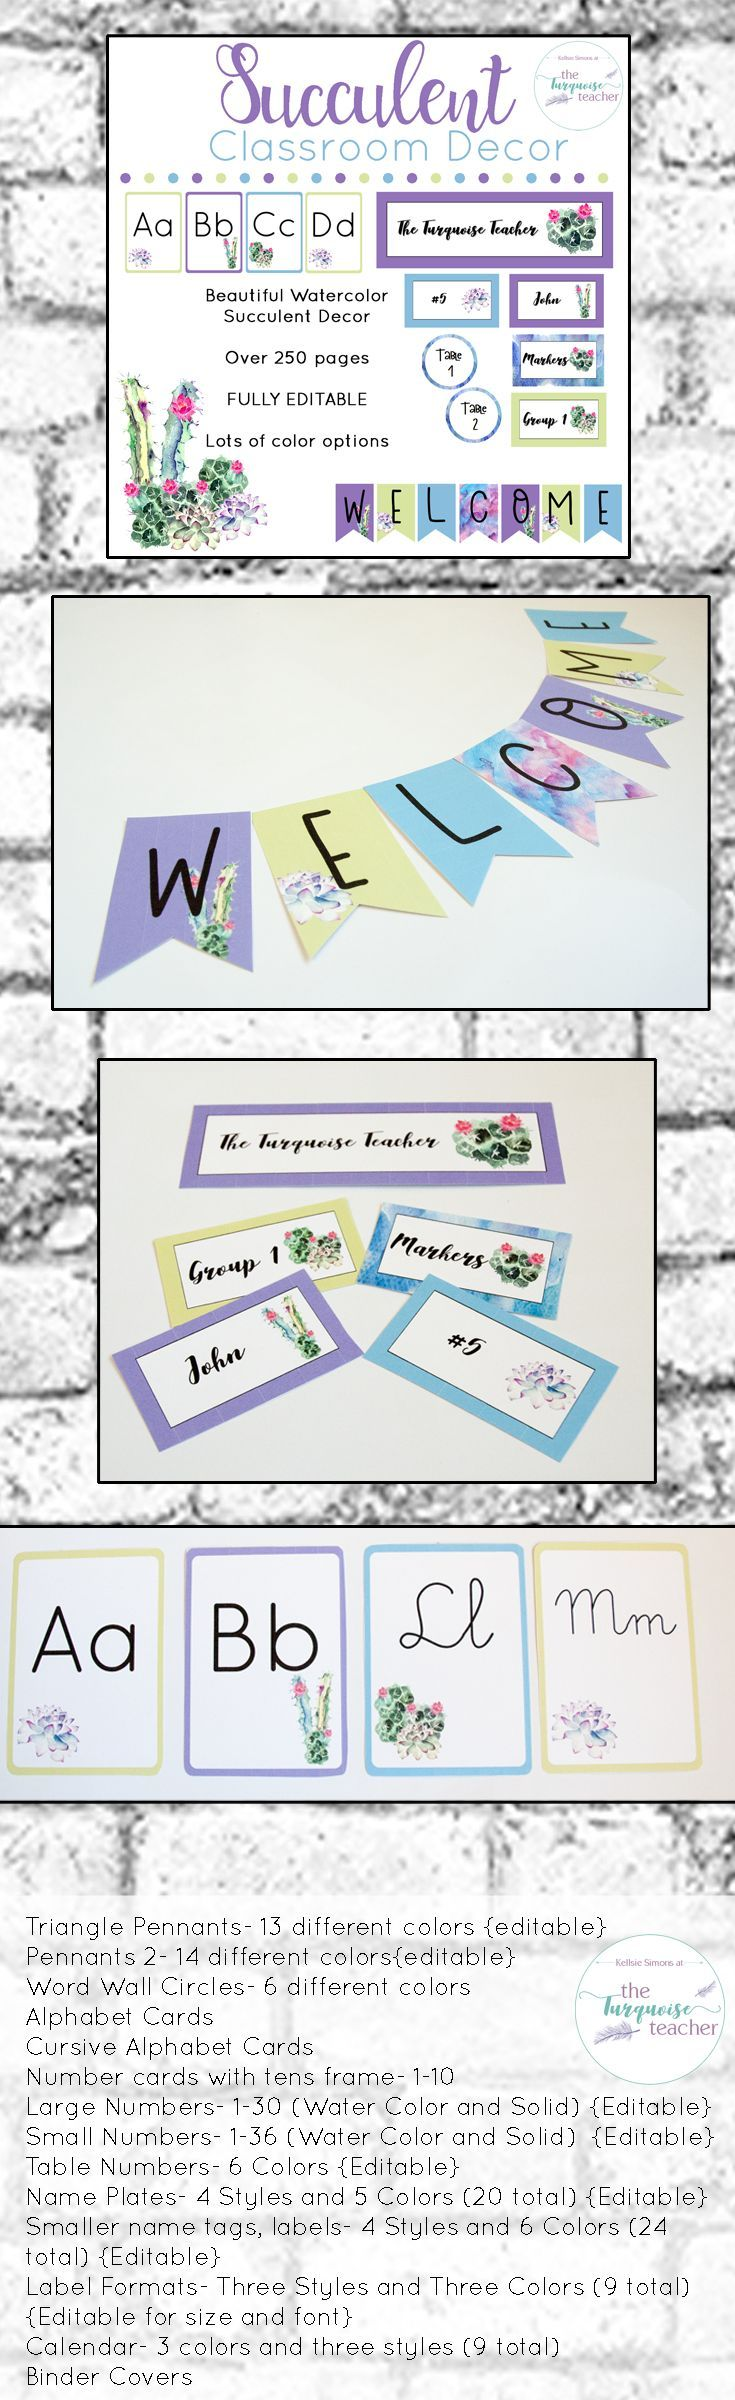 Watercolor Succulent Cactus Classroom Decor Theme   Fully Editable This set comes with so many different colors and styles for you to customize your classroom ( over 250 pages! ). All templates come in an editable format to make your own names tags, locker tags, labels, signs, class posters, banners and more! Mix water color and solid colors together to make a classroom uniquely you.